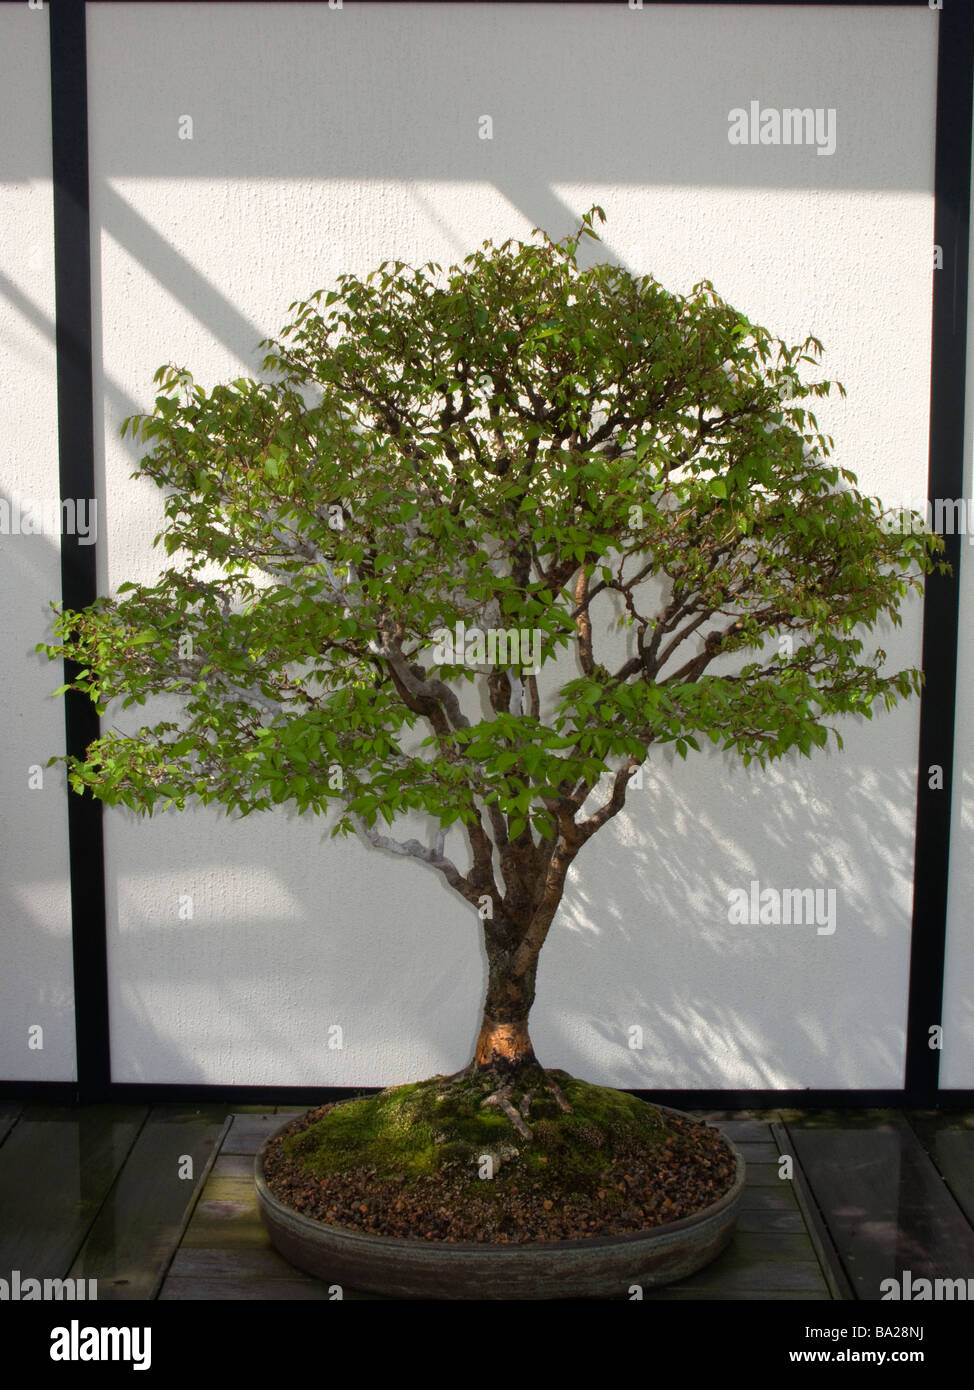 Longwood Gardens Bonsai High Resolution Stock Photography And Images Alamy